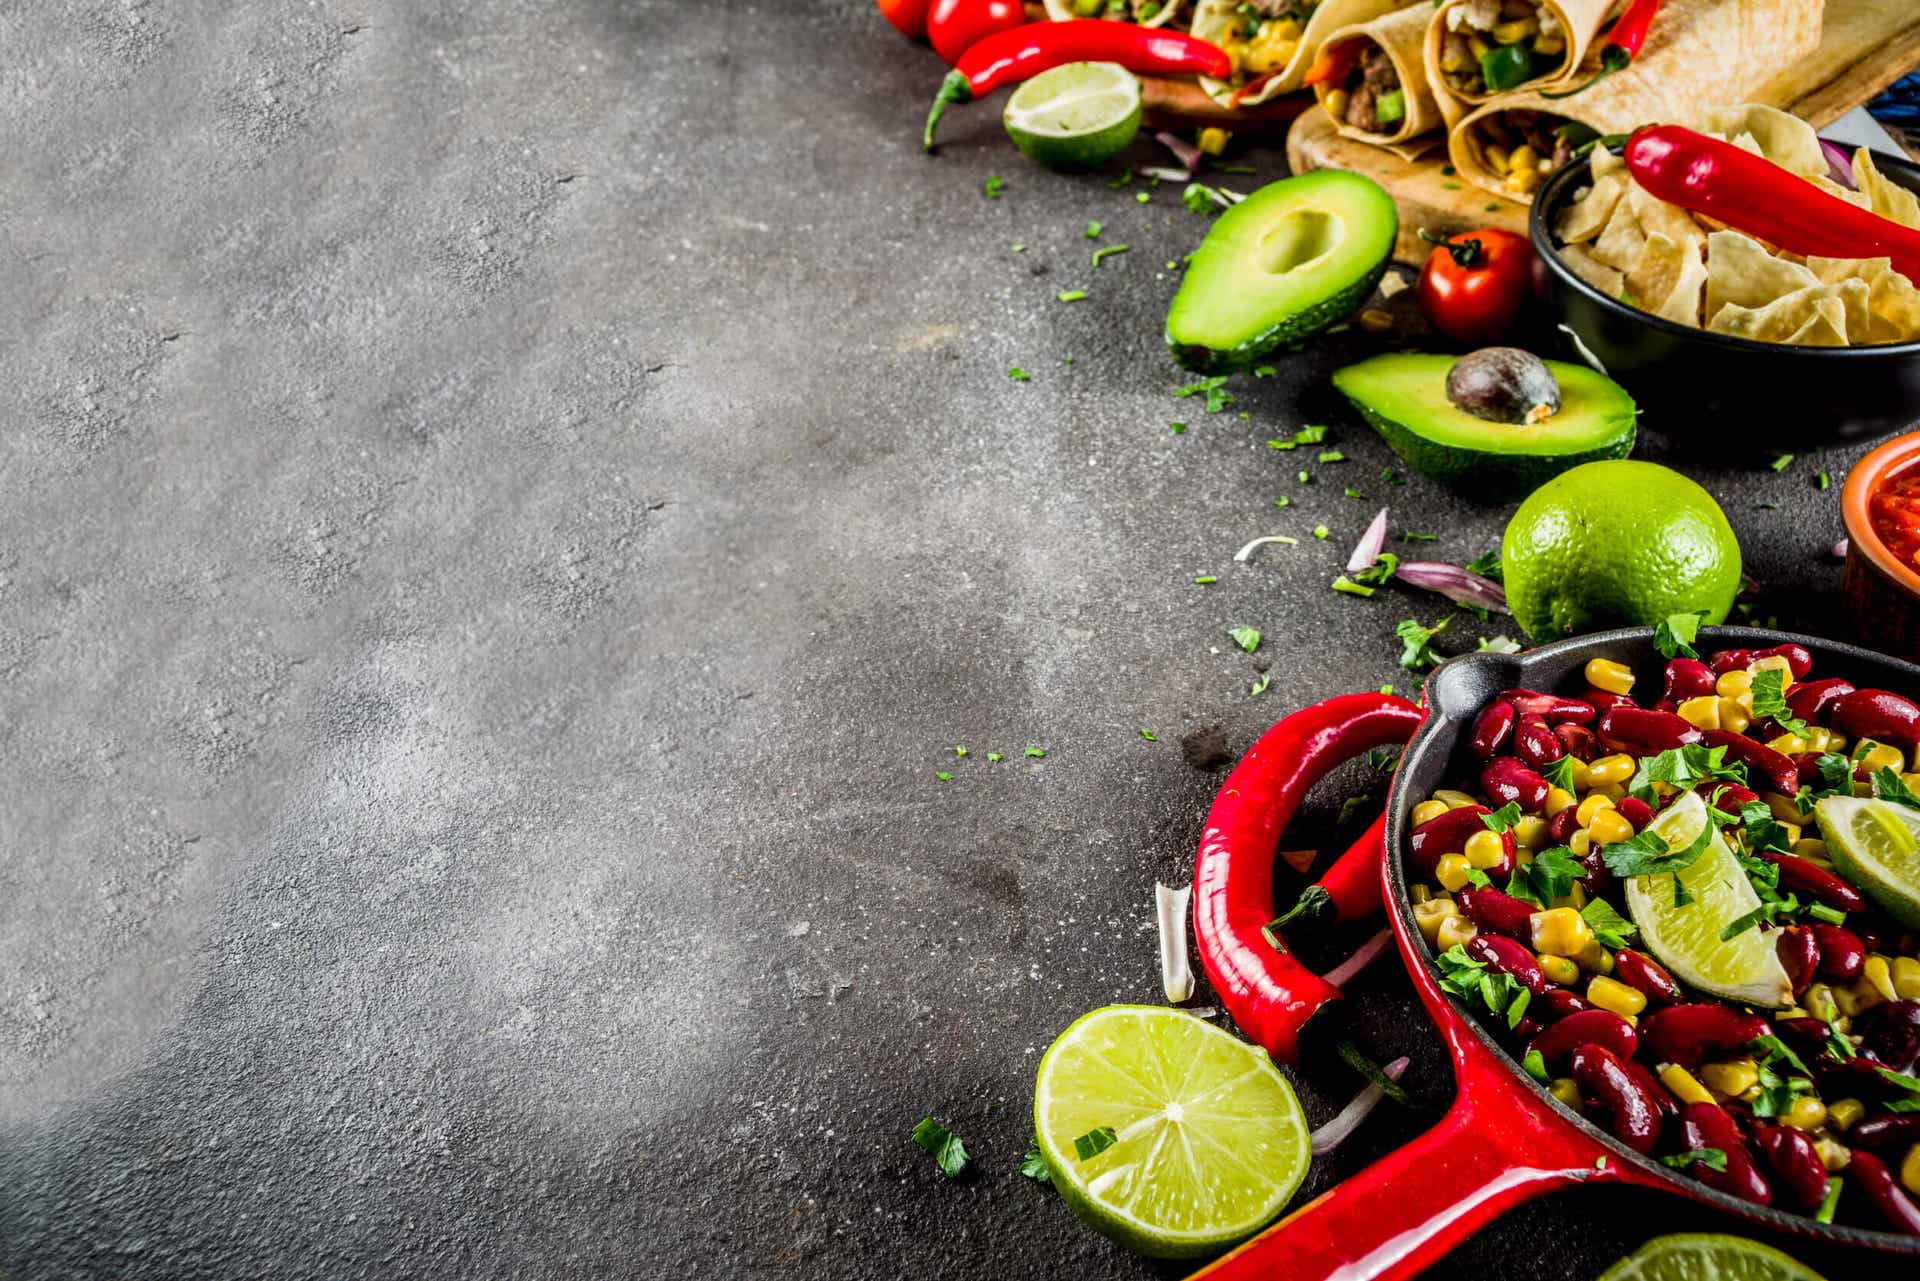 A skillet, bowl, and cutting board, all full of fresh Mexican foods made of beans, fruits, and vegetables.